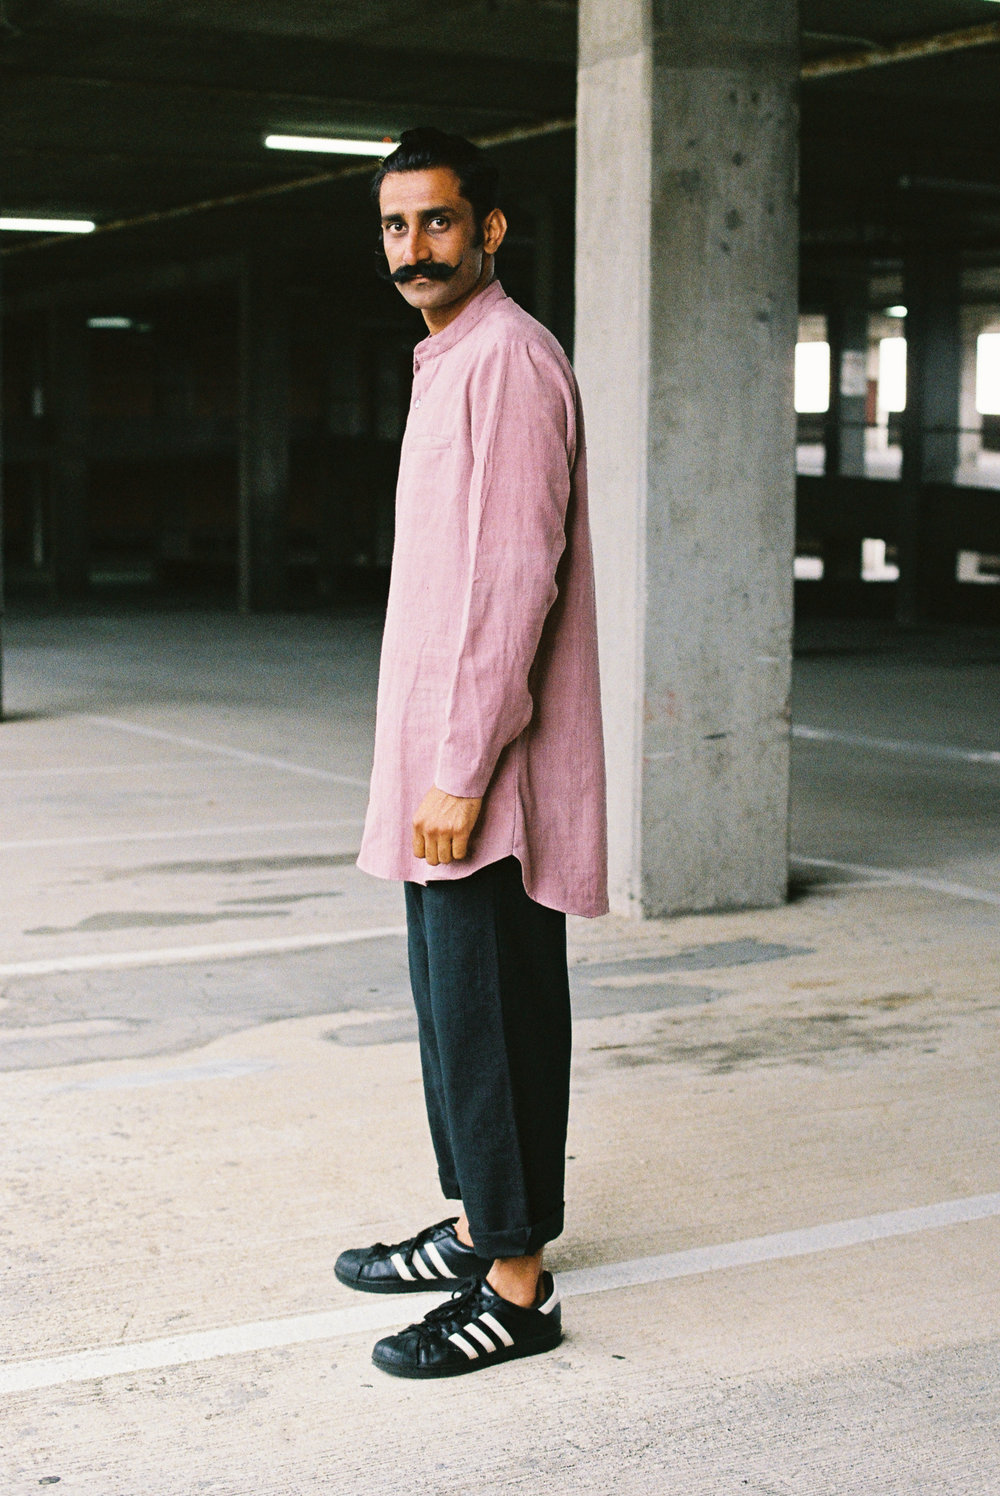 pinkshirtblackpants-4.jpg